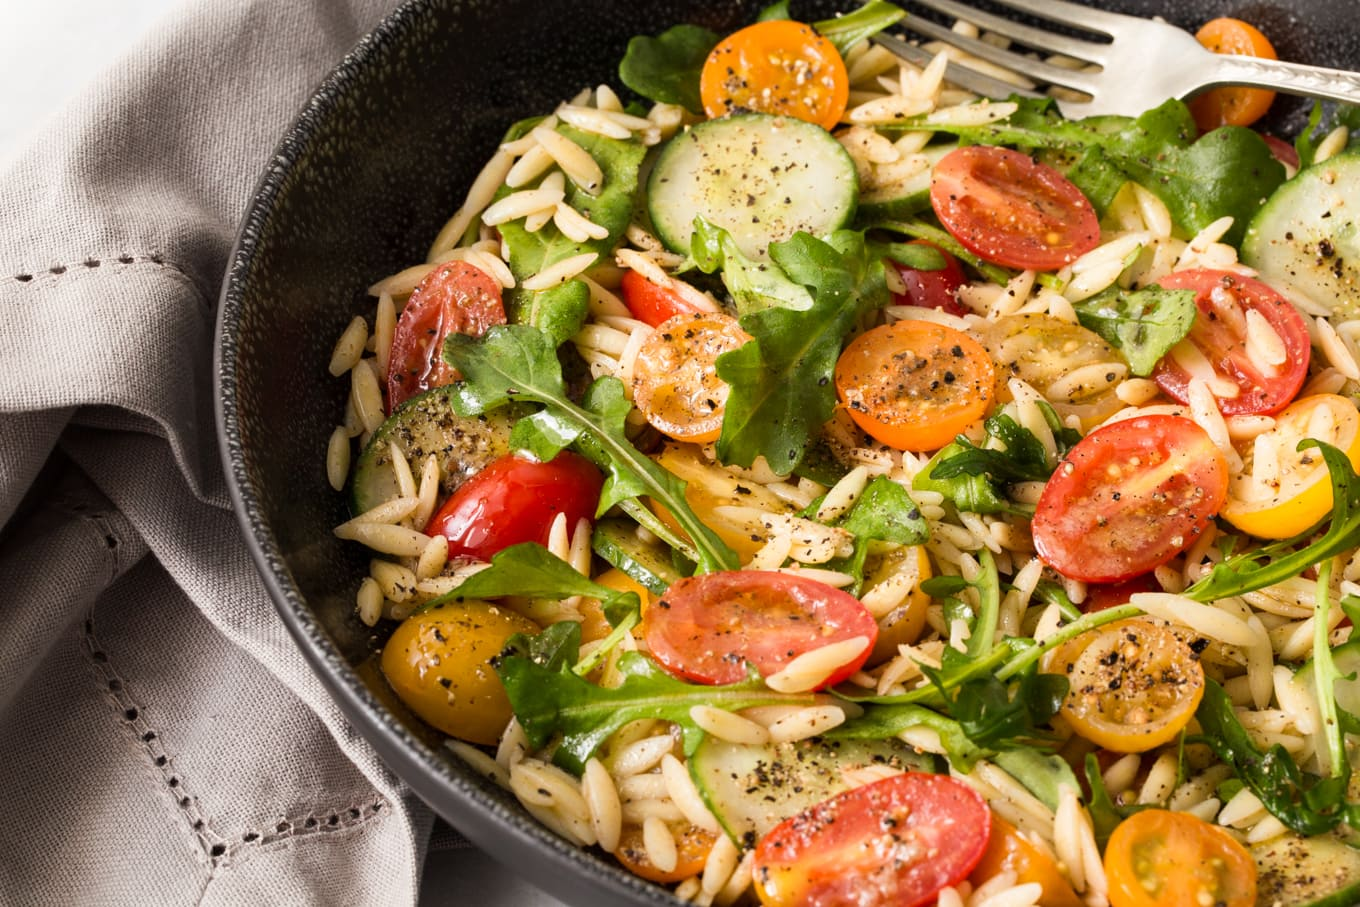 Greek Pasta Salad - from Terra's Kitchen. All the work is done ahead of time for you! This wonderful salad comes together in less than 15 minutes with a little help from Terra's Kitchen.